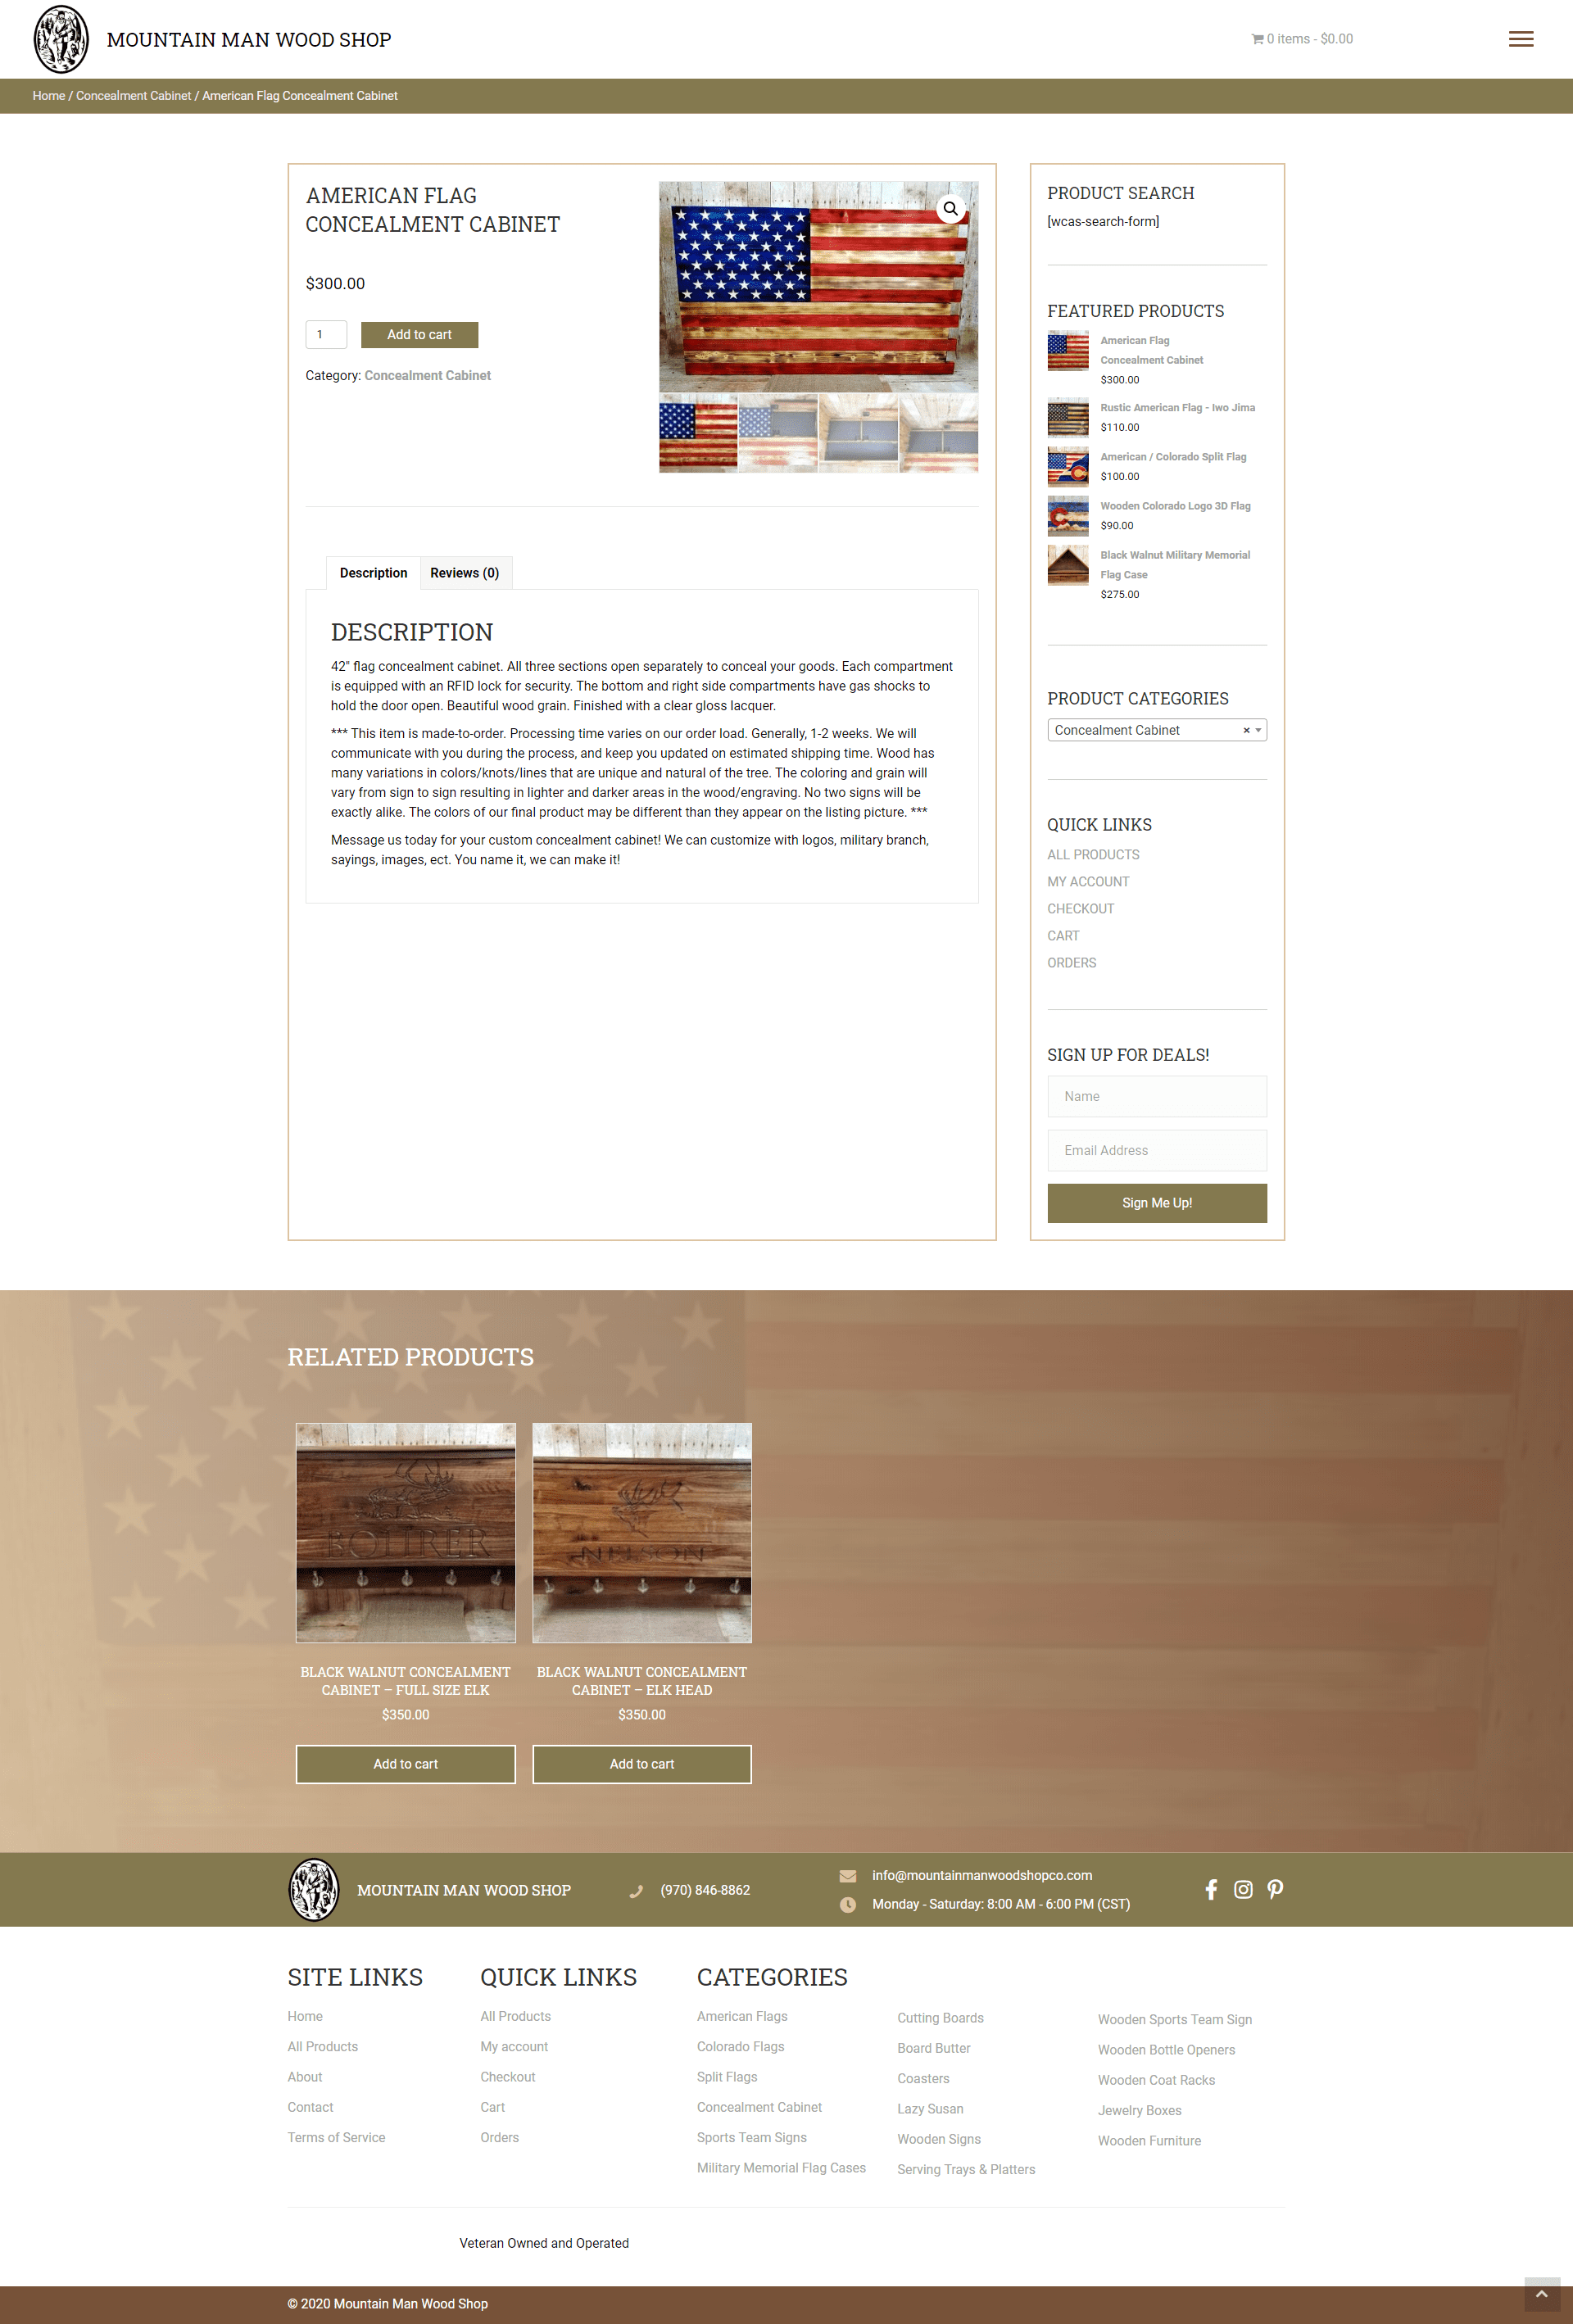 screencapture-mountainmanwoodshopco-product-american-flag-concealment-cabinet-product